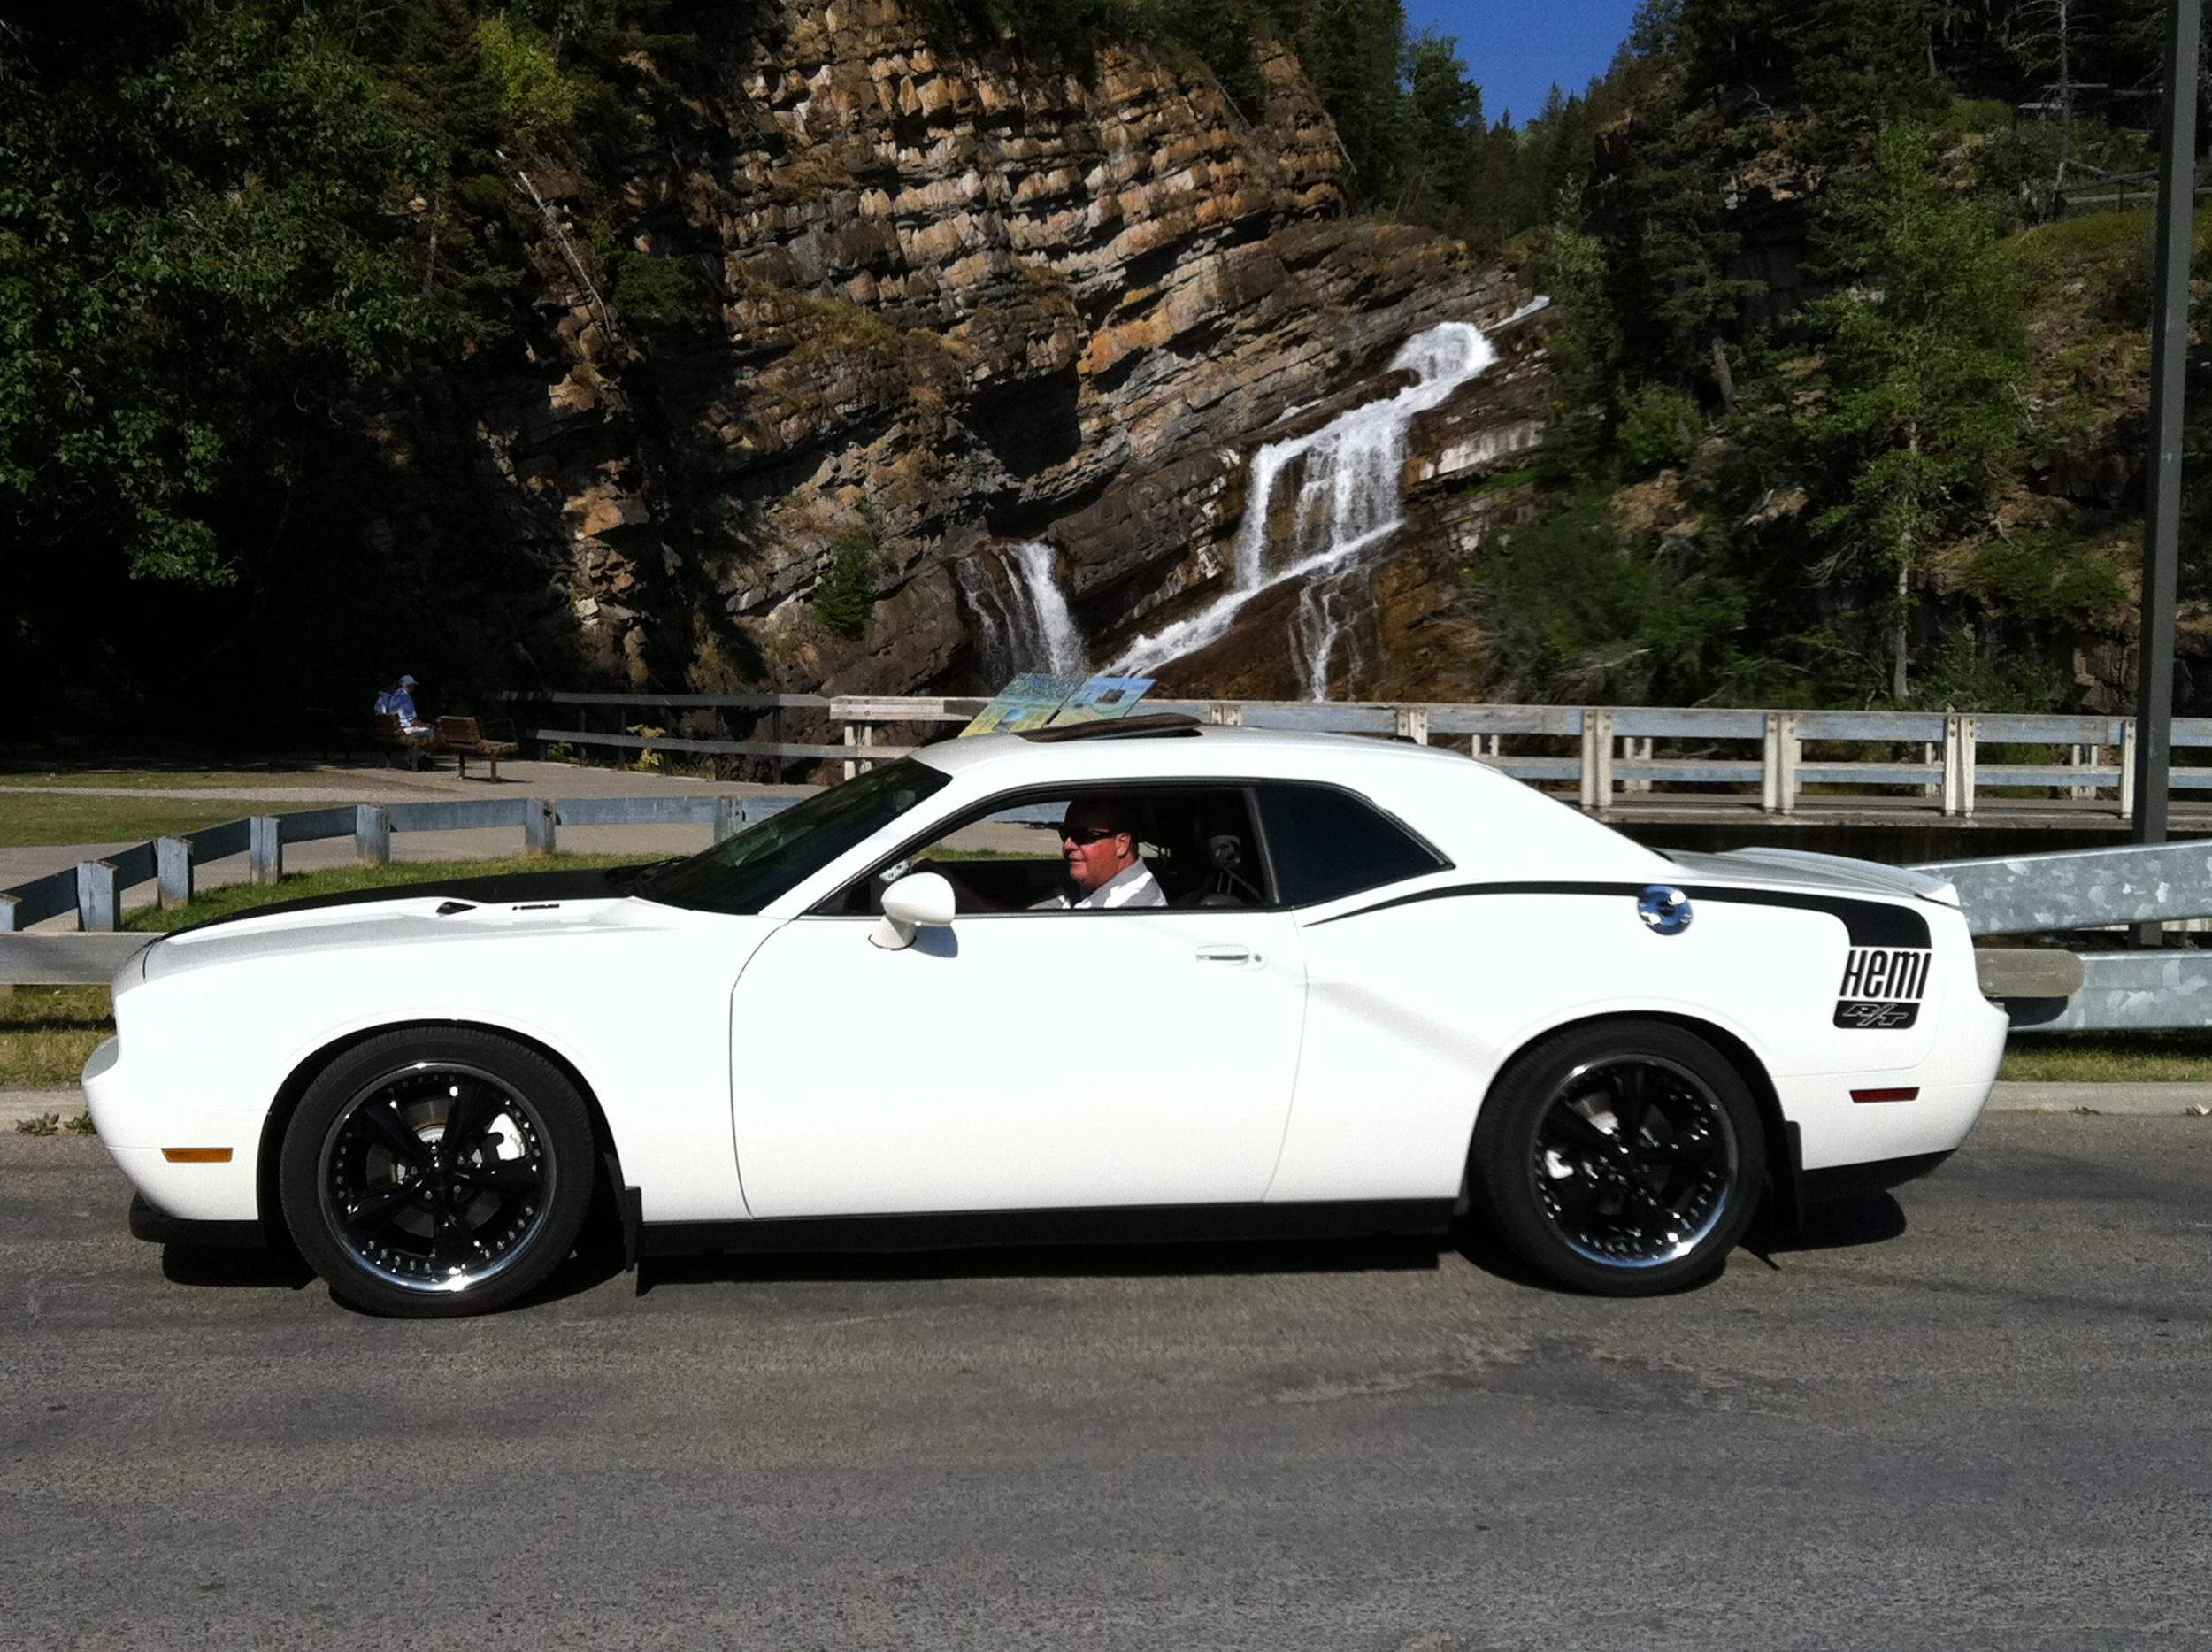 I want to see pics of white Challengers!-img_0525.jpg